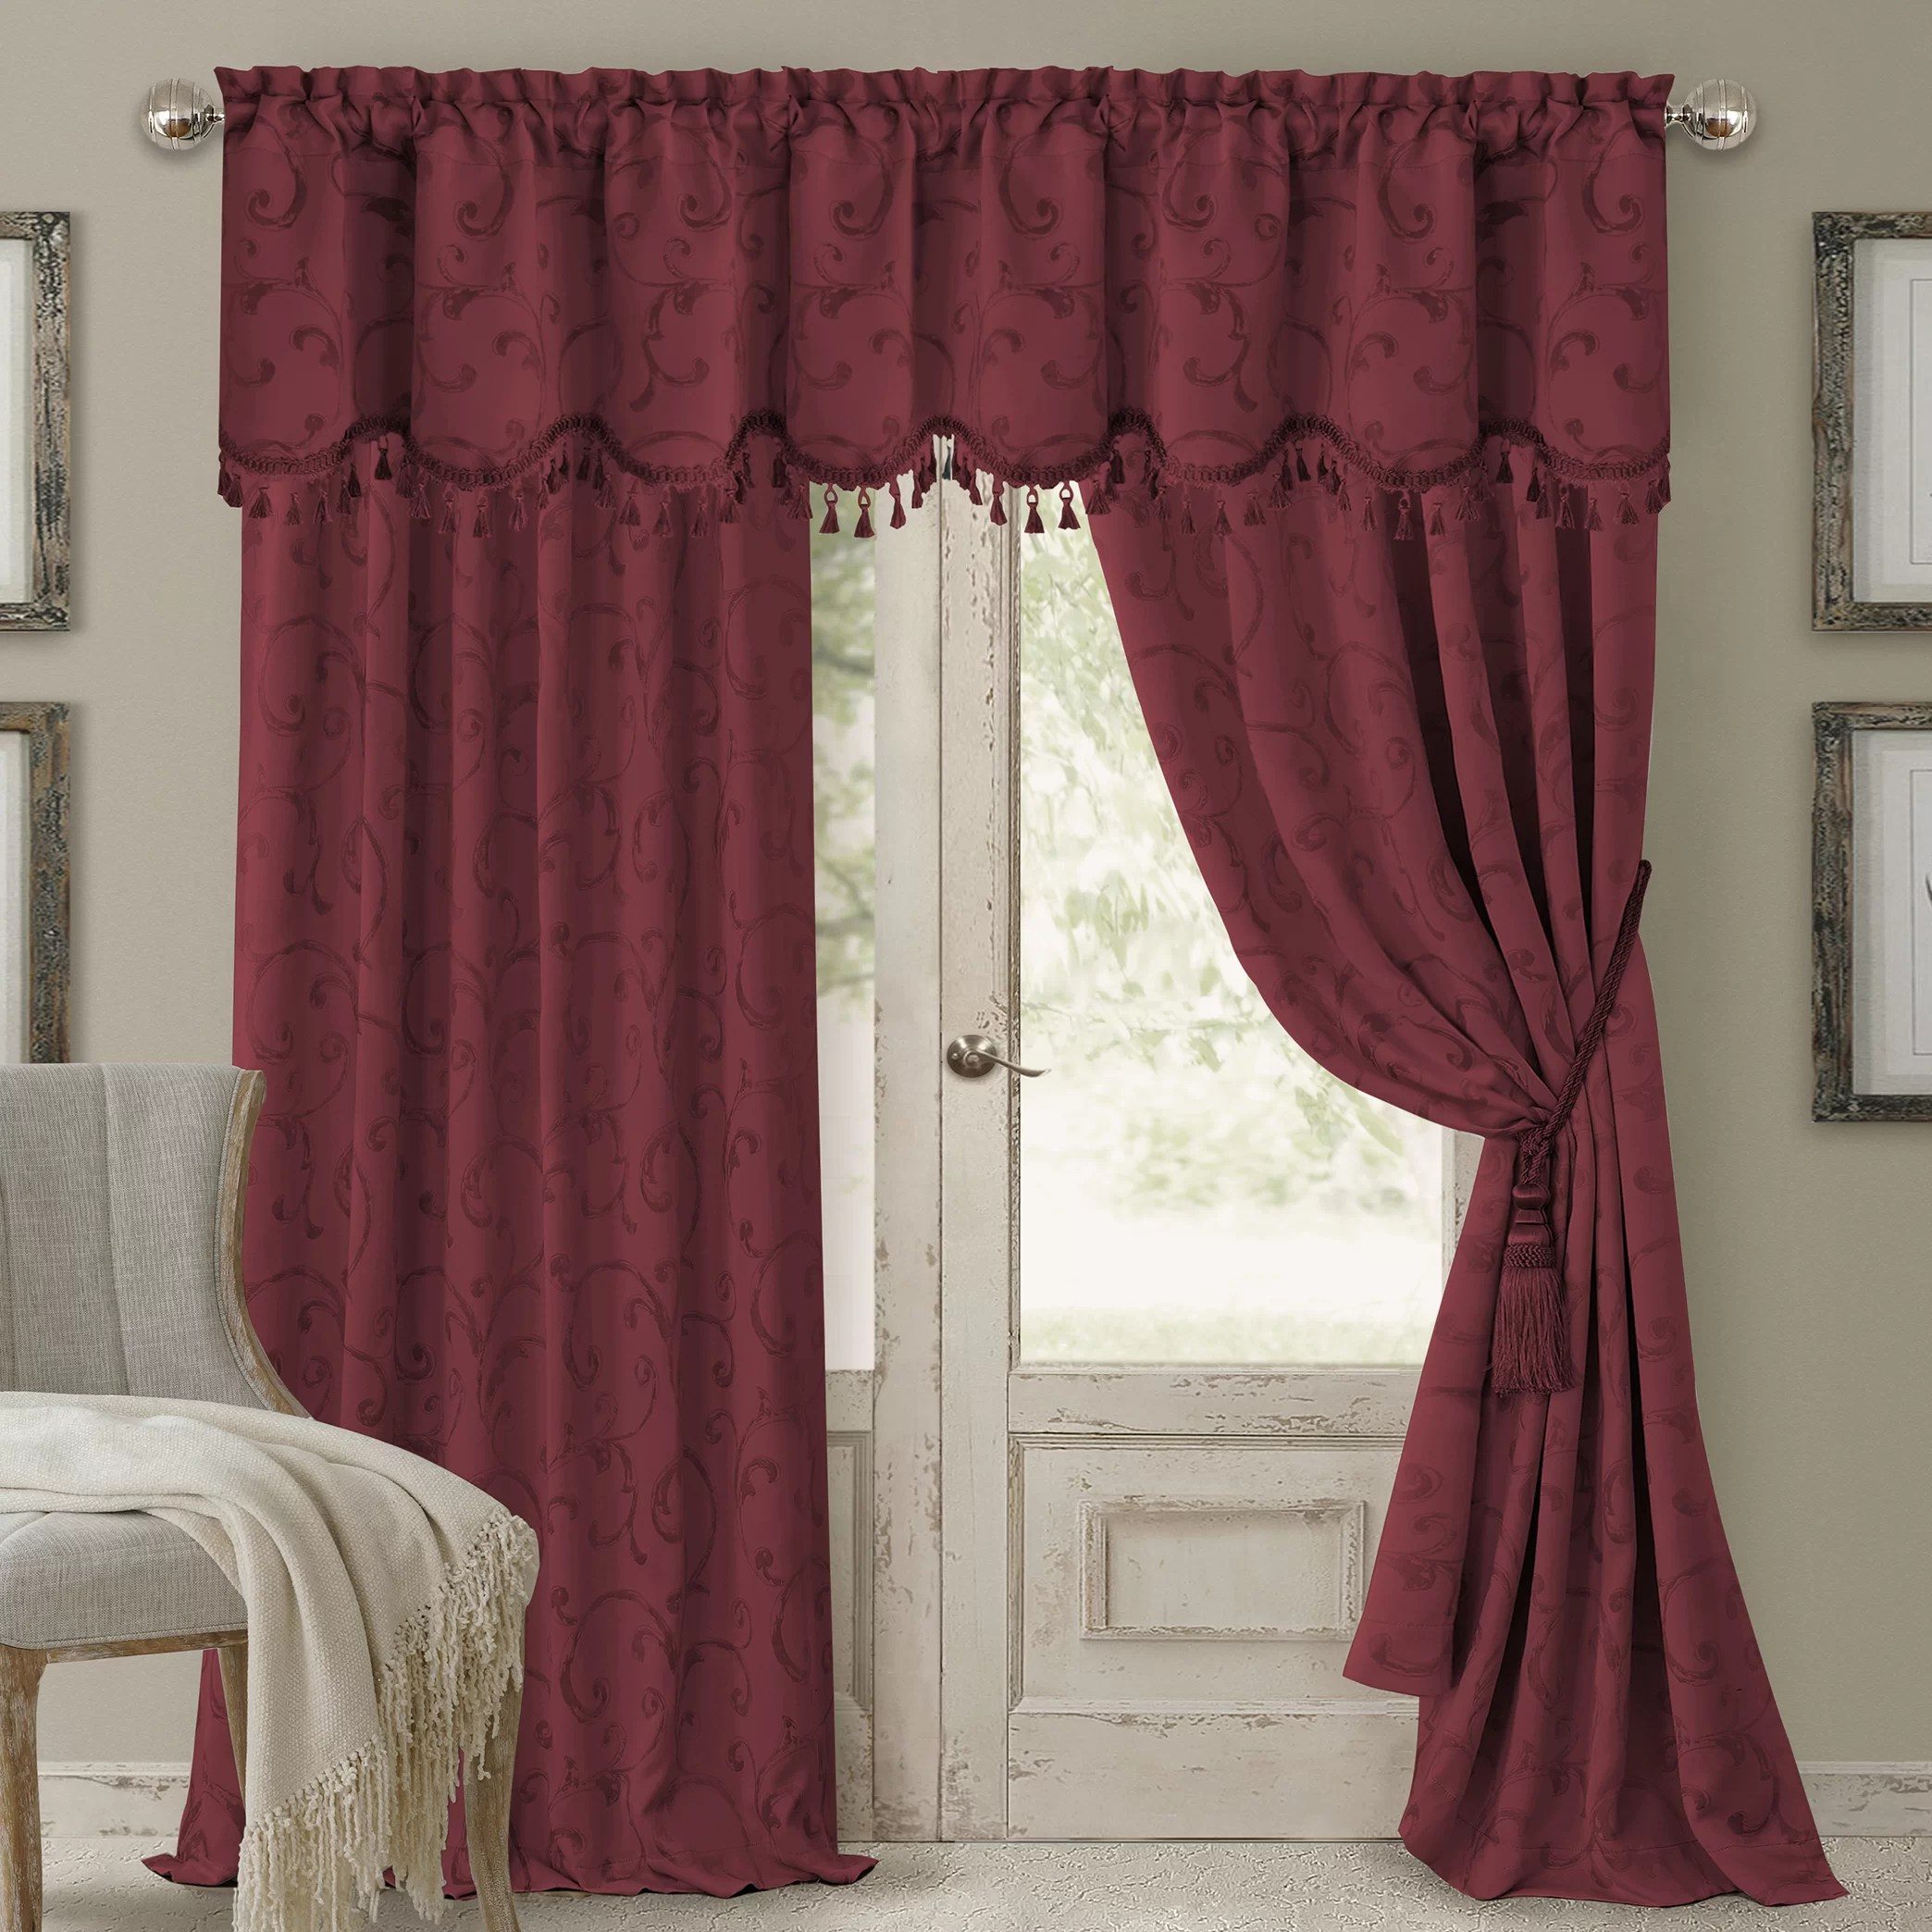 Dark Red Blackout Curtains Mia Jacquard Damask Blackout Rod Pocket Single Curtain Panel